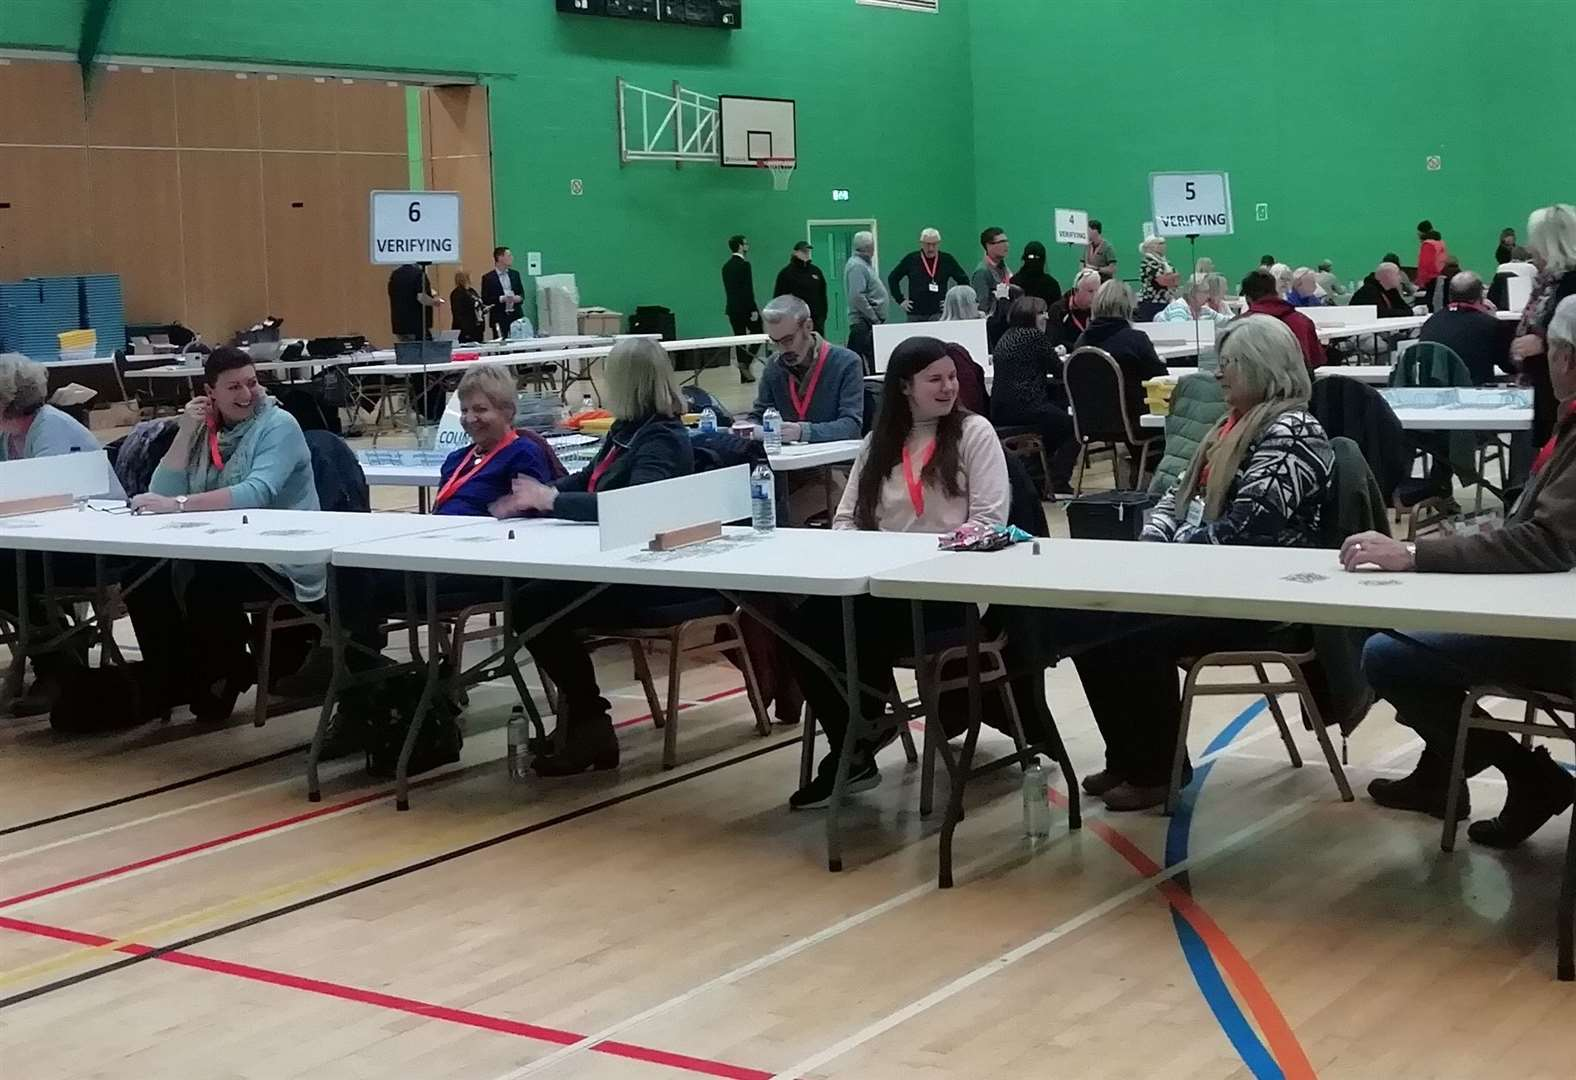 General Election 2019: Grantham and Stamford - Counting begins